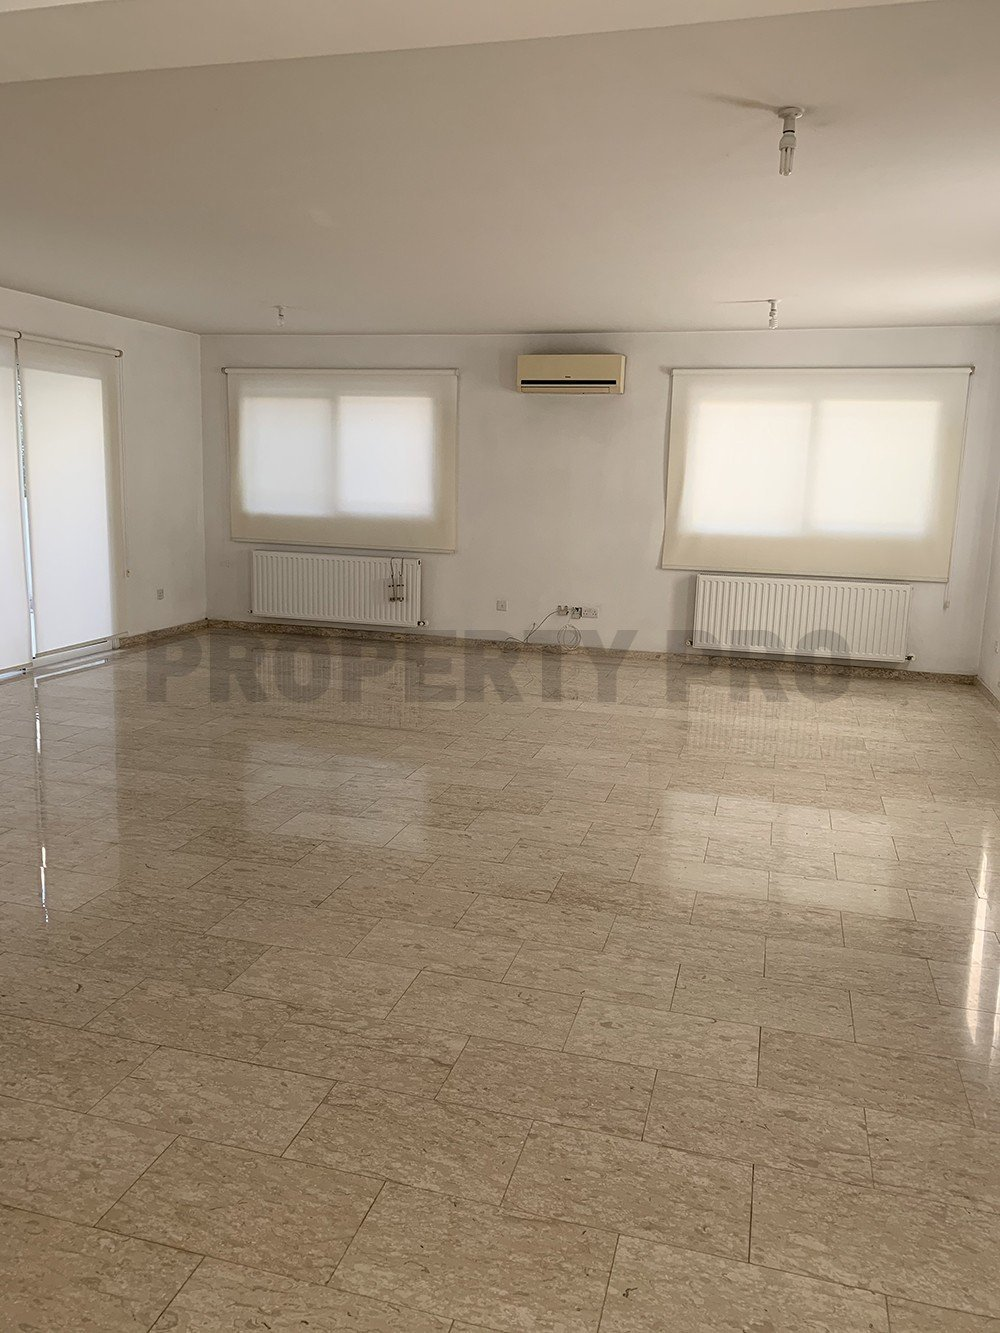 For Sale, Four-Bedroom + Attic Room House in Strovolos